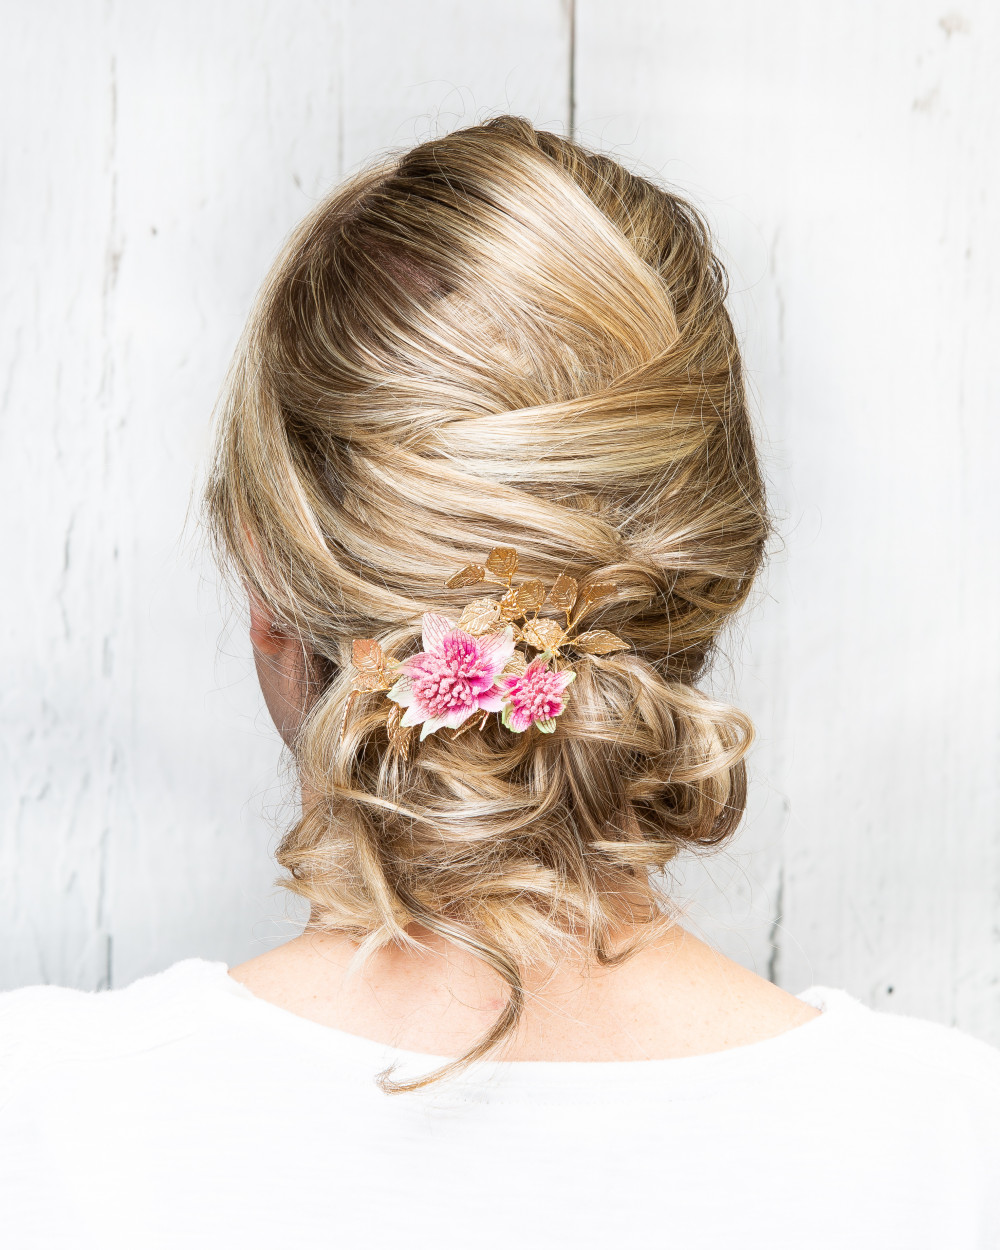 Wedding / bridal hair by Martine Turner - Make Me Bridal Artist: Head Turners - Martine Turner. #bridalhair #hairup #bridalhairstylist #bridesmaidhair #weddinghair #eleganthair #texturedupdo #weddinghairstylist #prettyupdo #bridalhairup